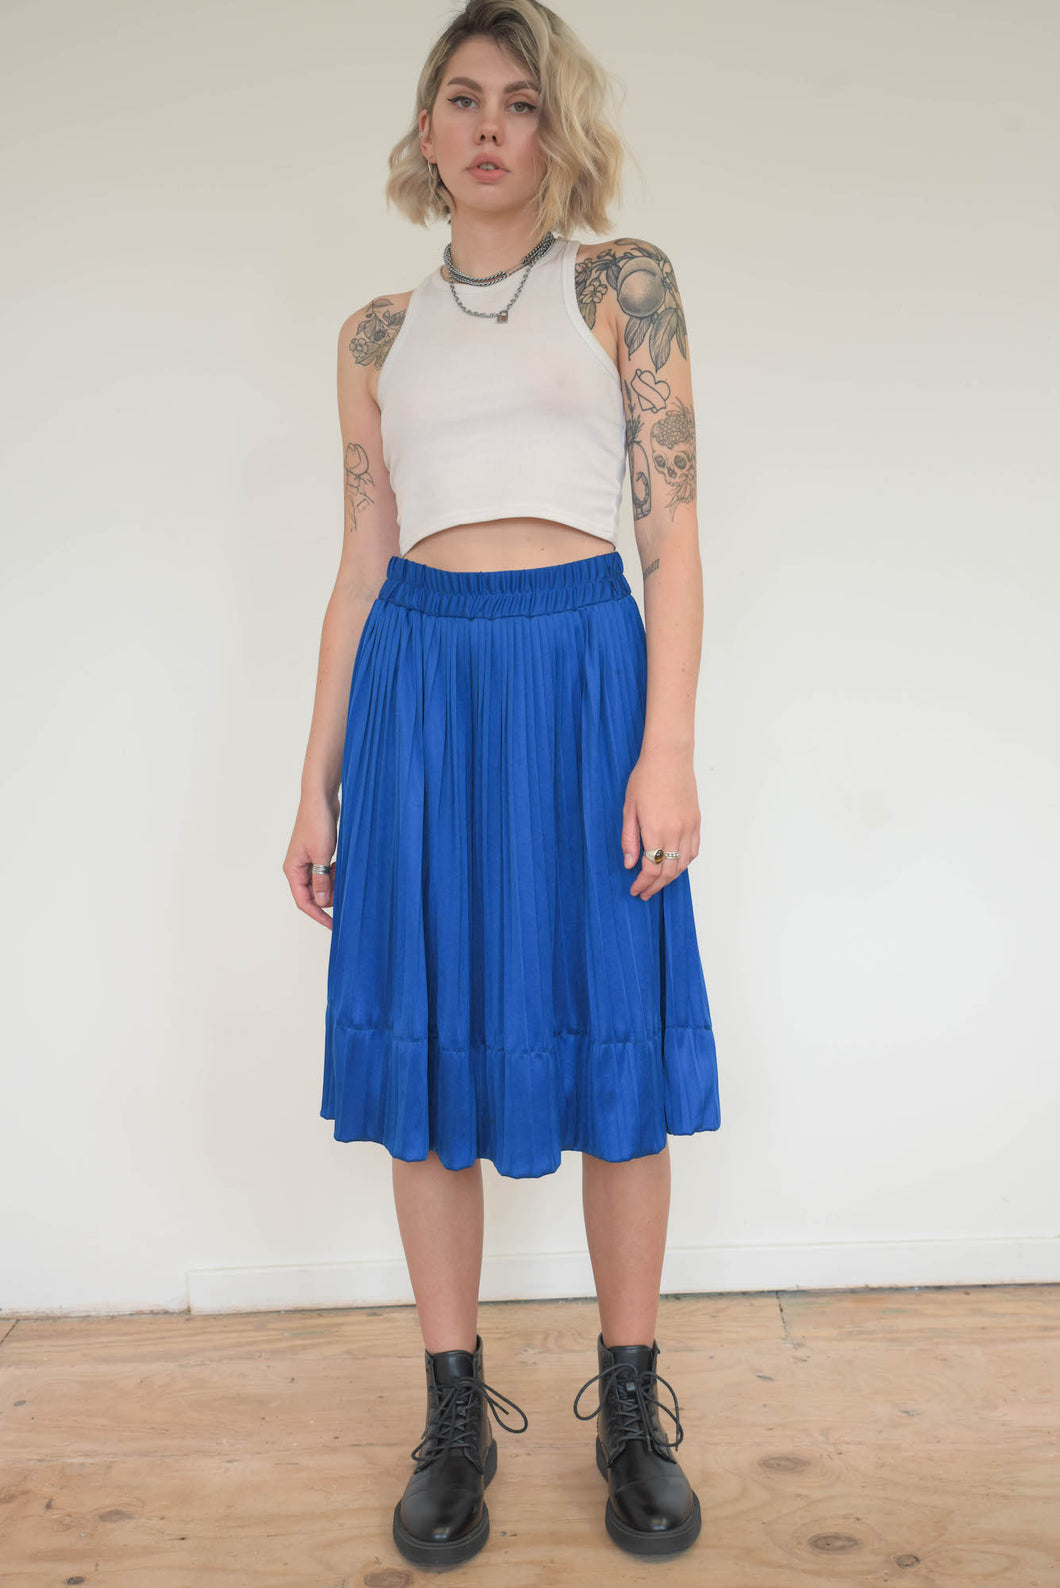 Vintage 70s Skirt Pleated Midi in Blue in S/M